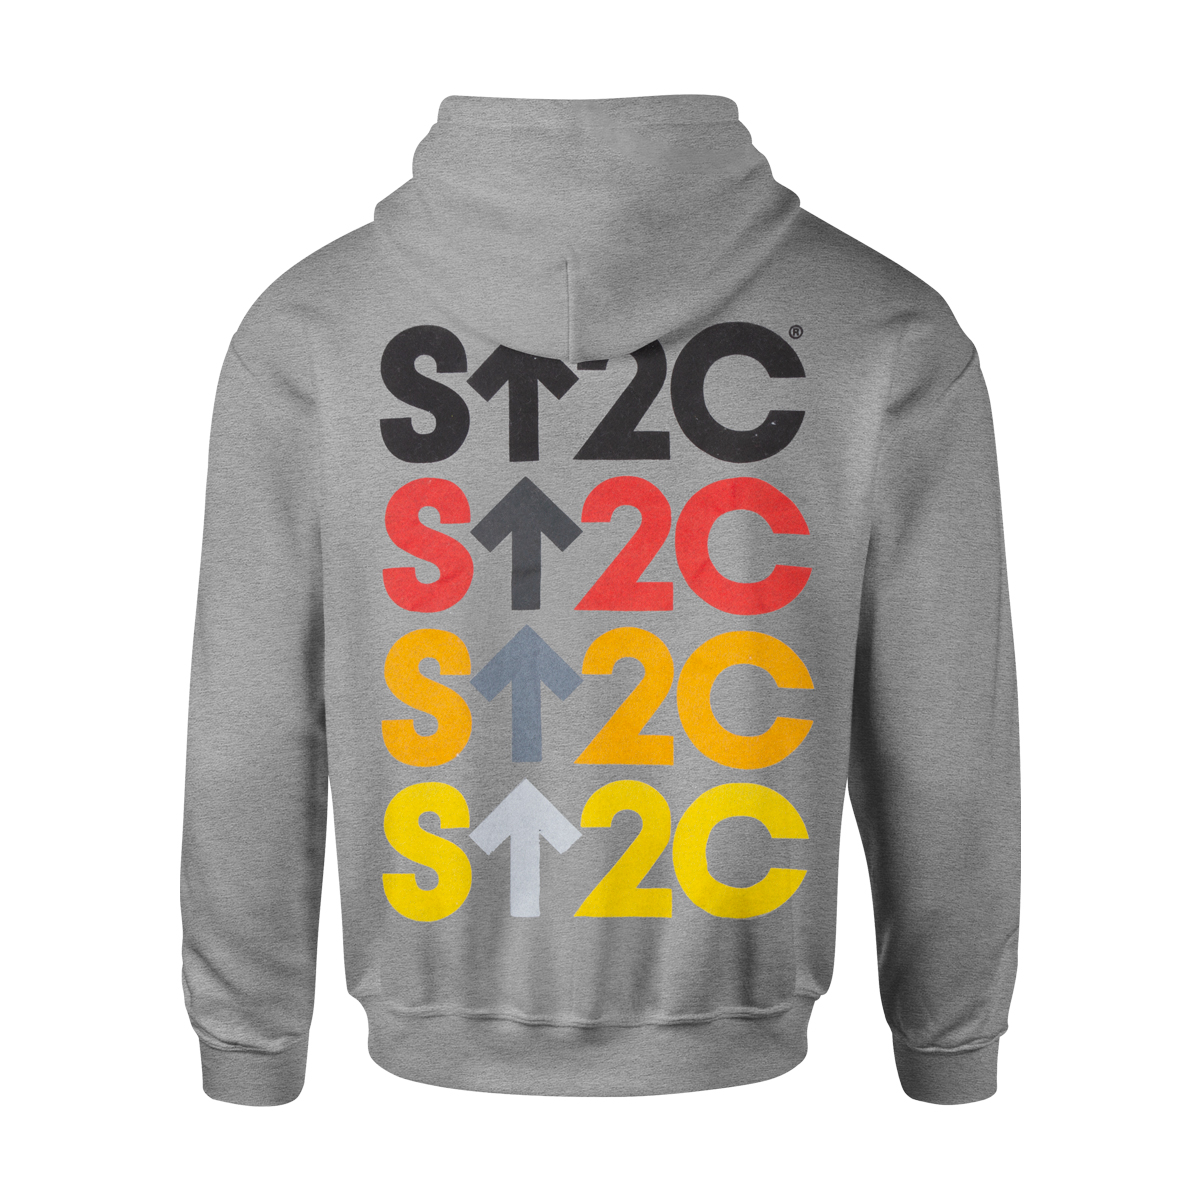 SU2C Men's Full Logo Zip Up Hoodie